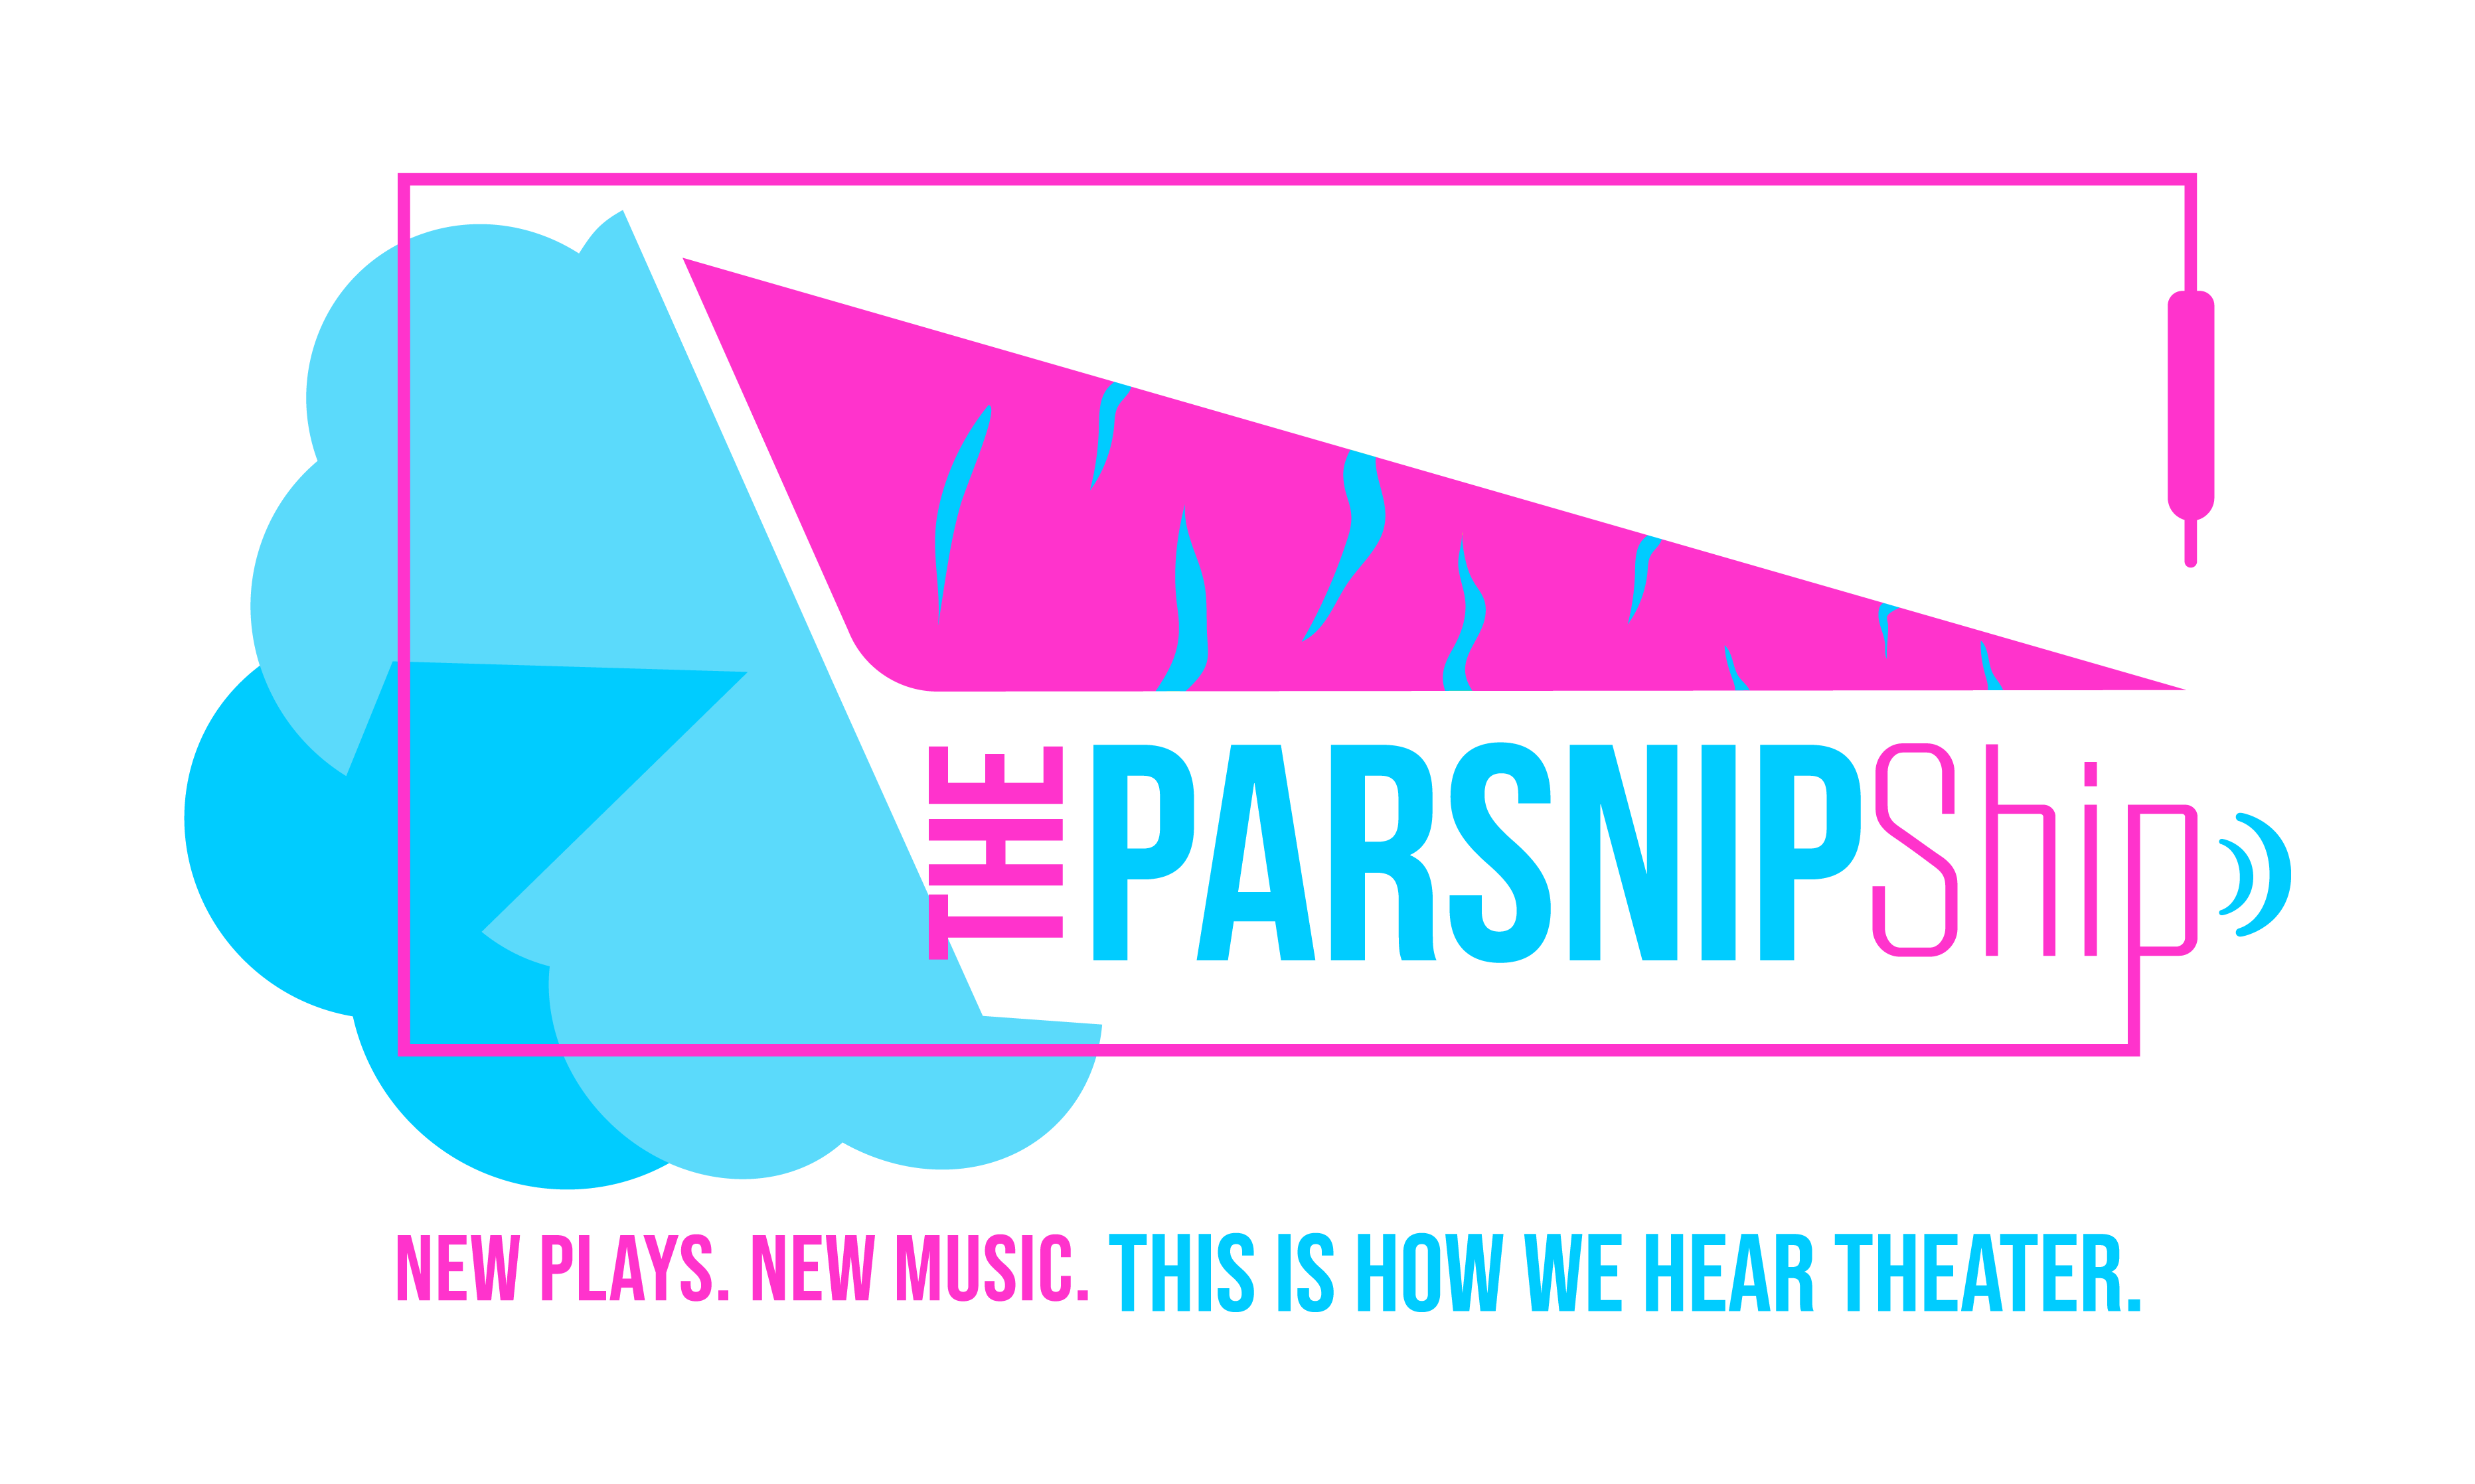 logo for the parsnip ship podcast